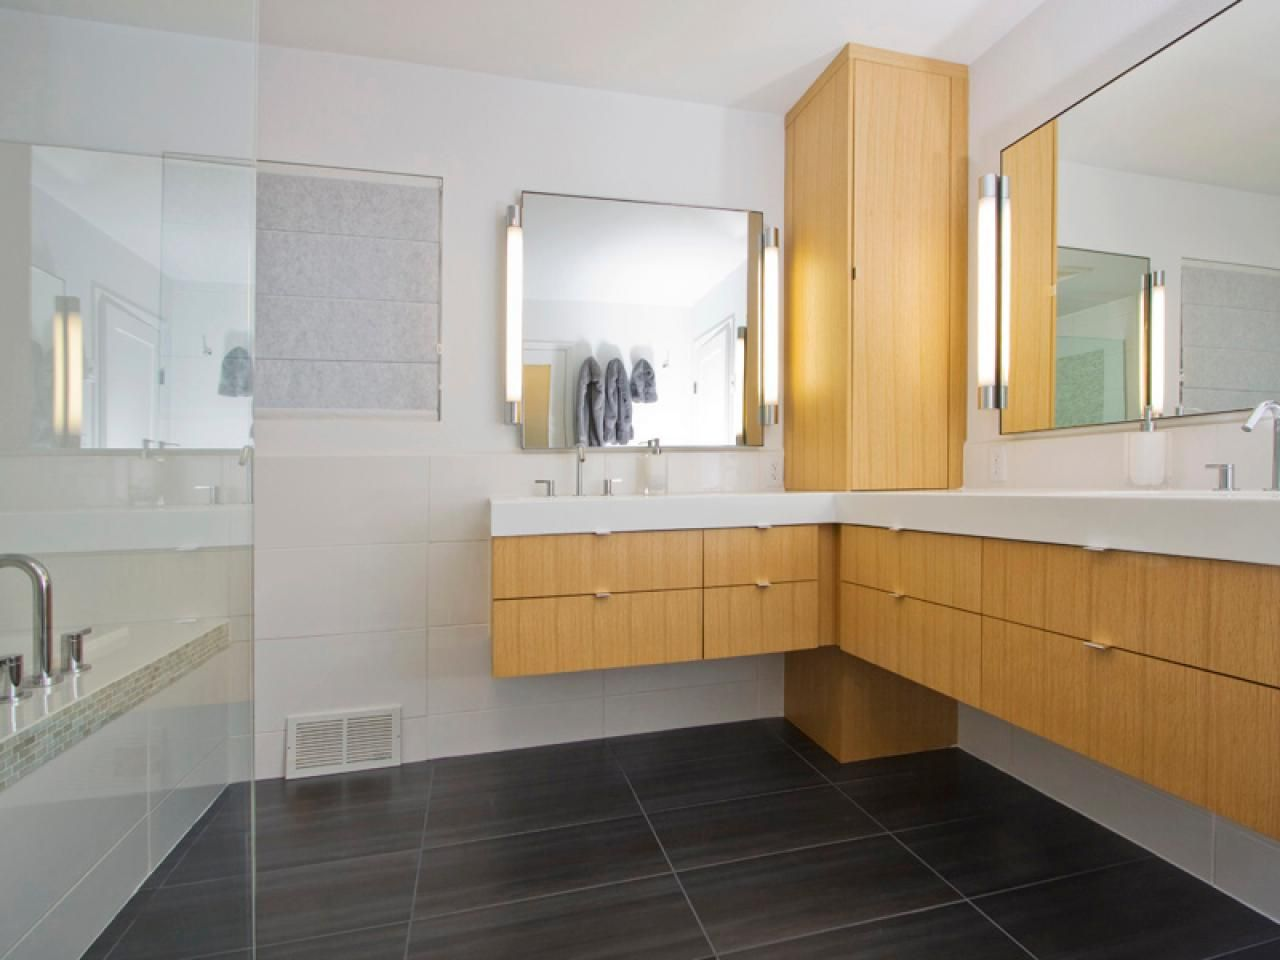 Master bedroom bathroom layout  Design a Bath That Grows With You  Shower seat Grab bars and